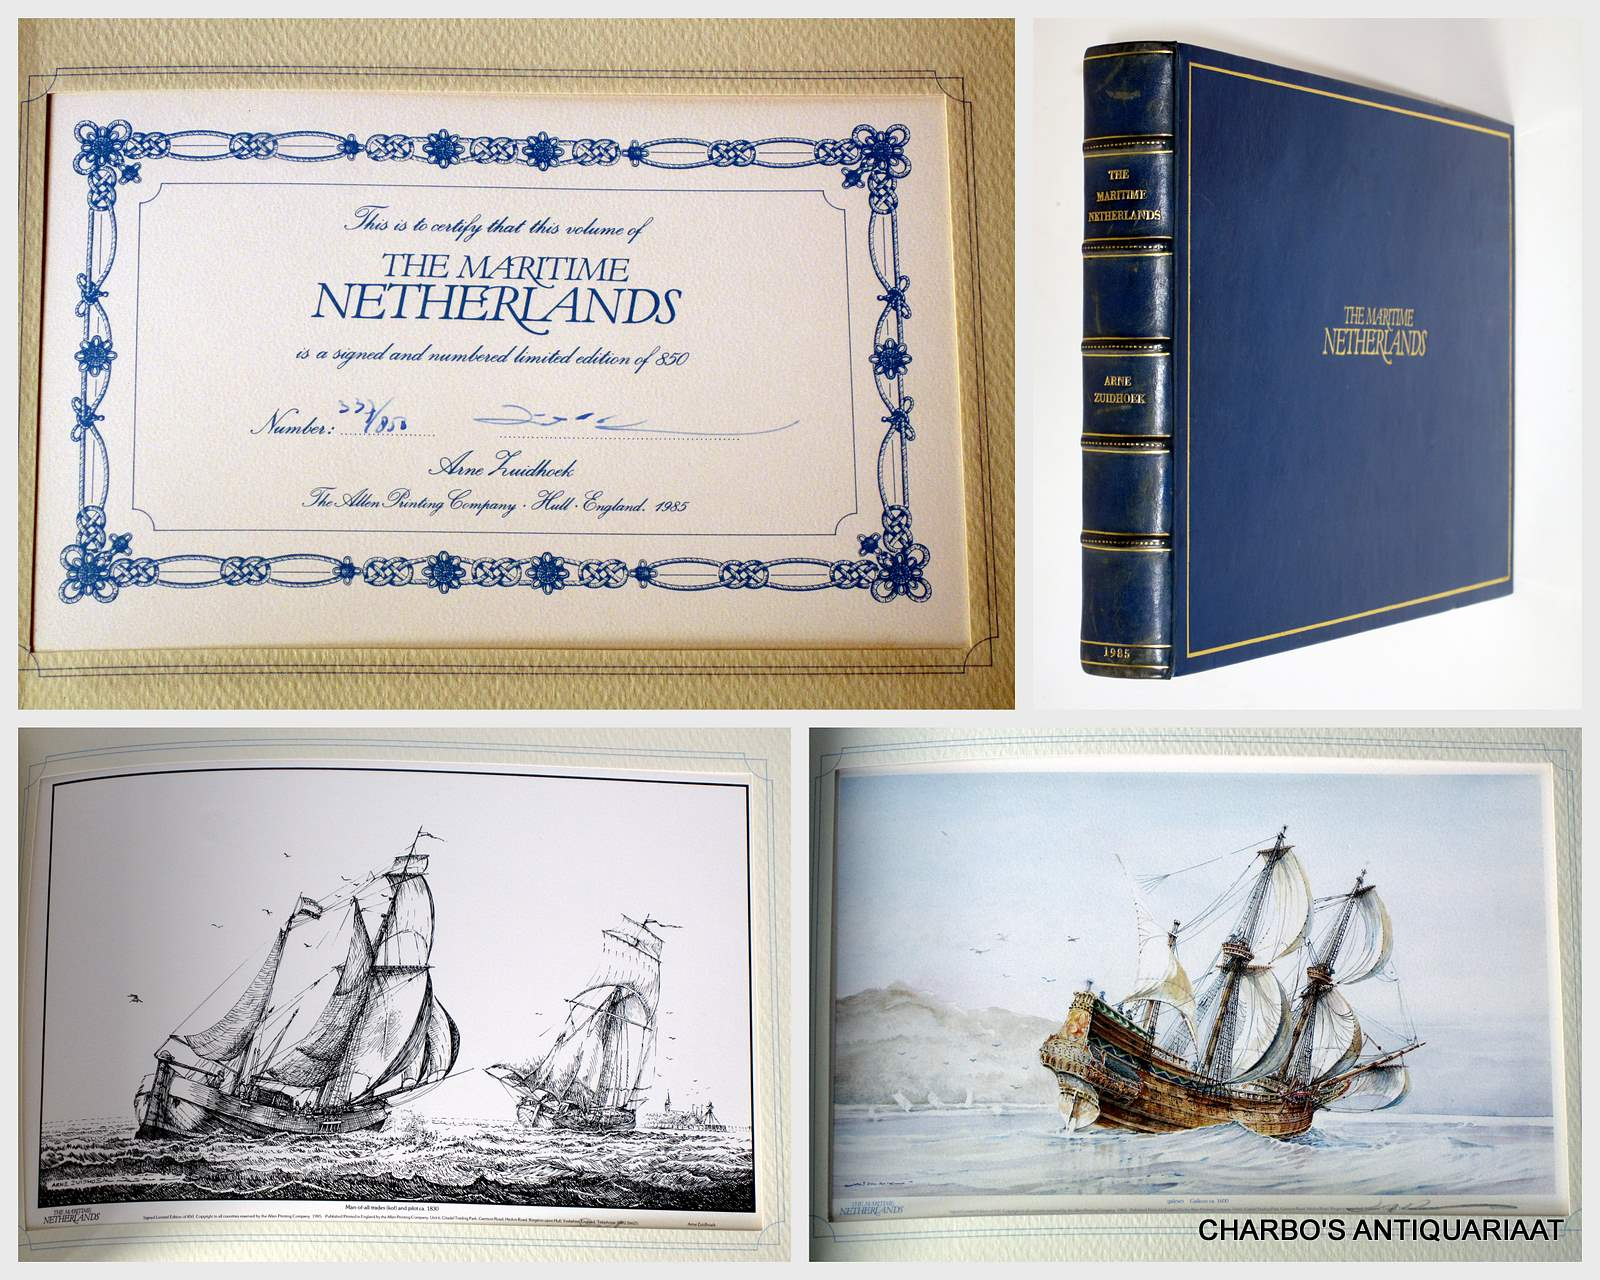 ZUIDHOEK, ARNE (TEXT & PLATES), -  The maritime Netherlands. Foreword by Anthony van Kampen.